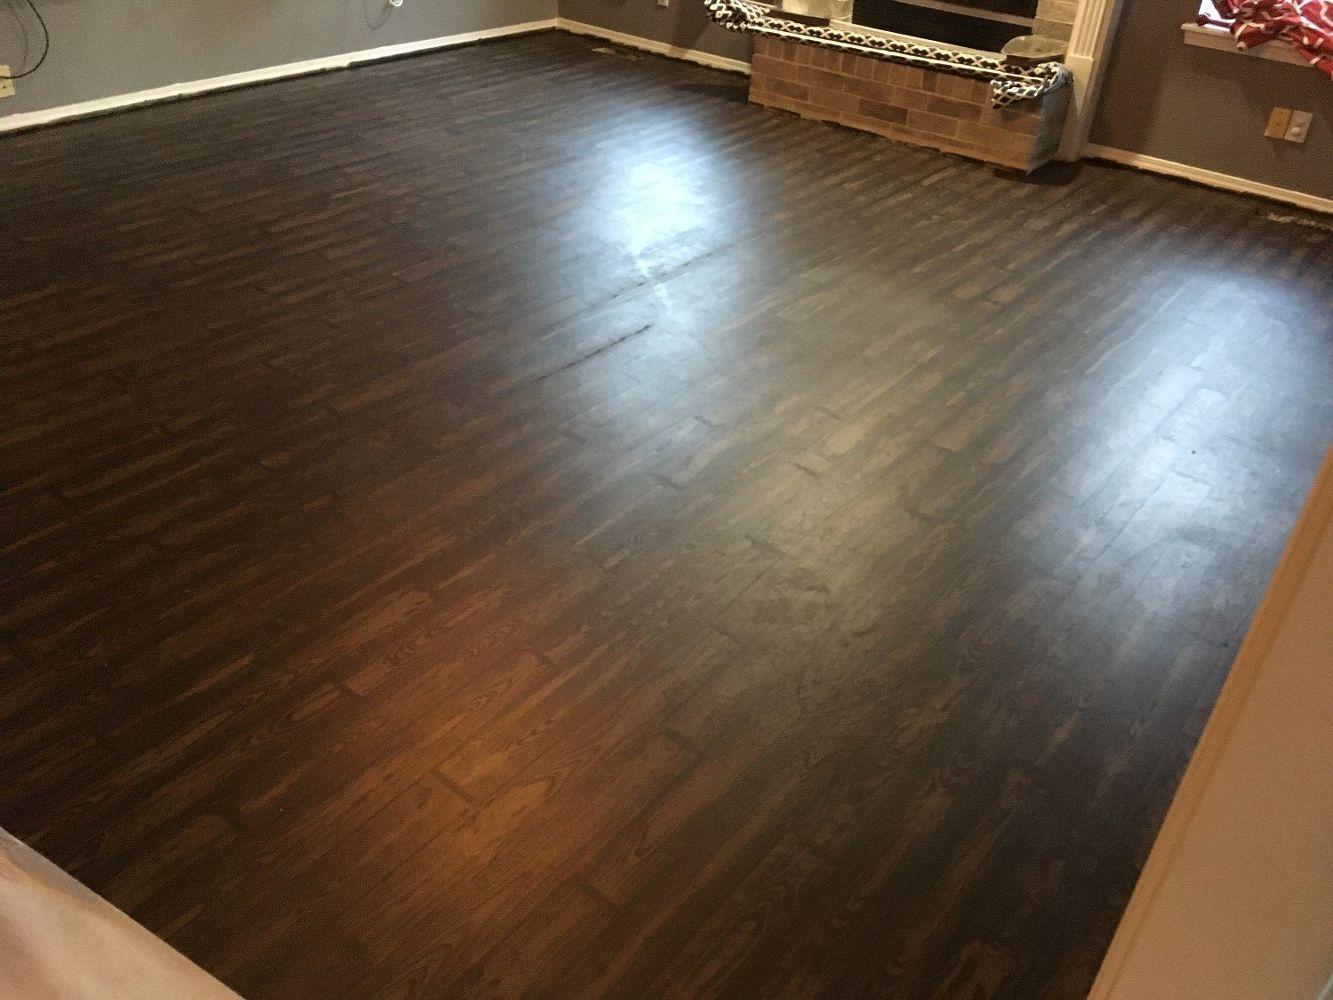 How To Transform Your Old Carpet And Linoleum Floor To Faux Wood Faux Wood Flooring Linoleum Flooring Diy Wood Floors